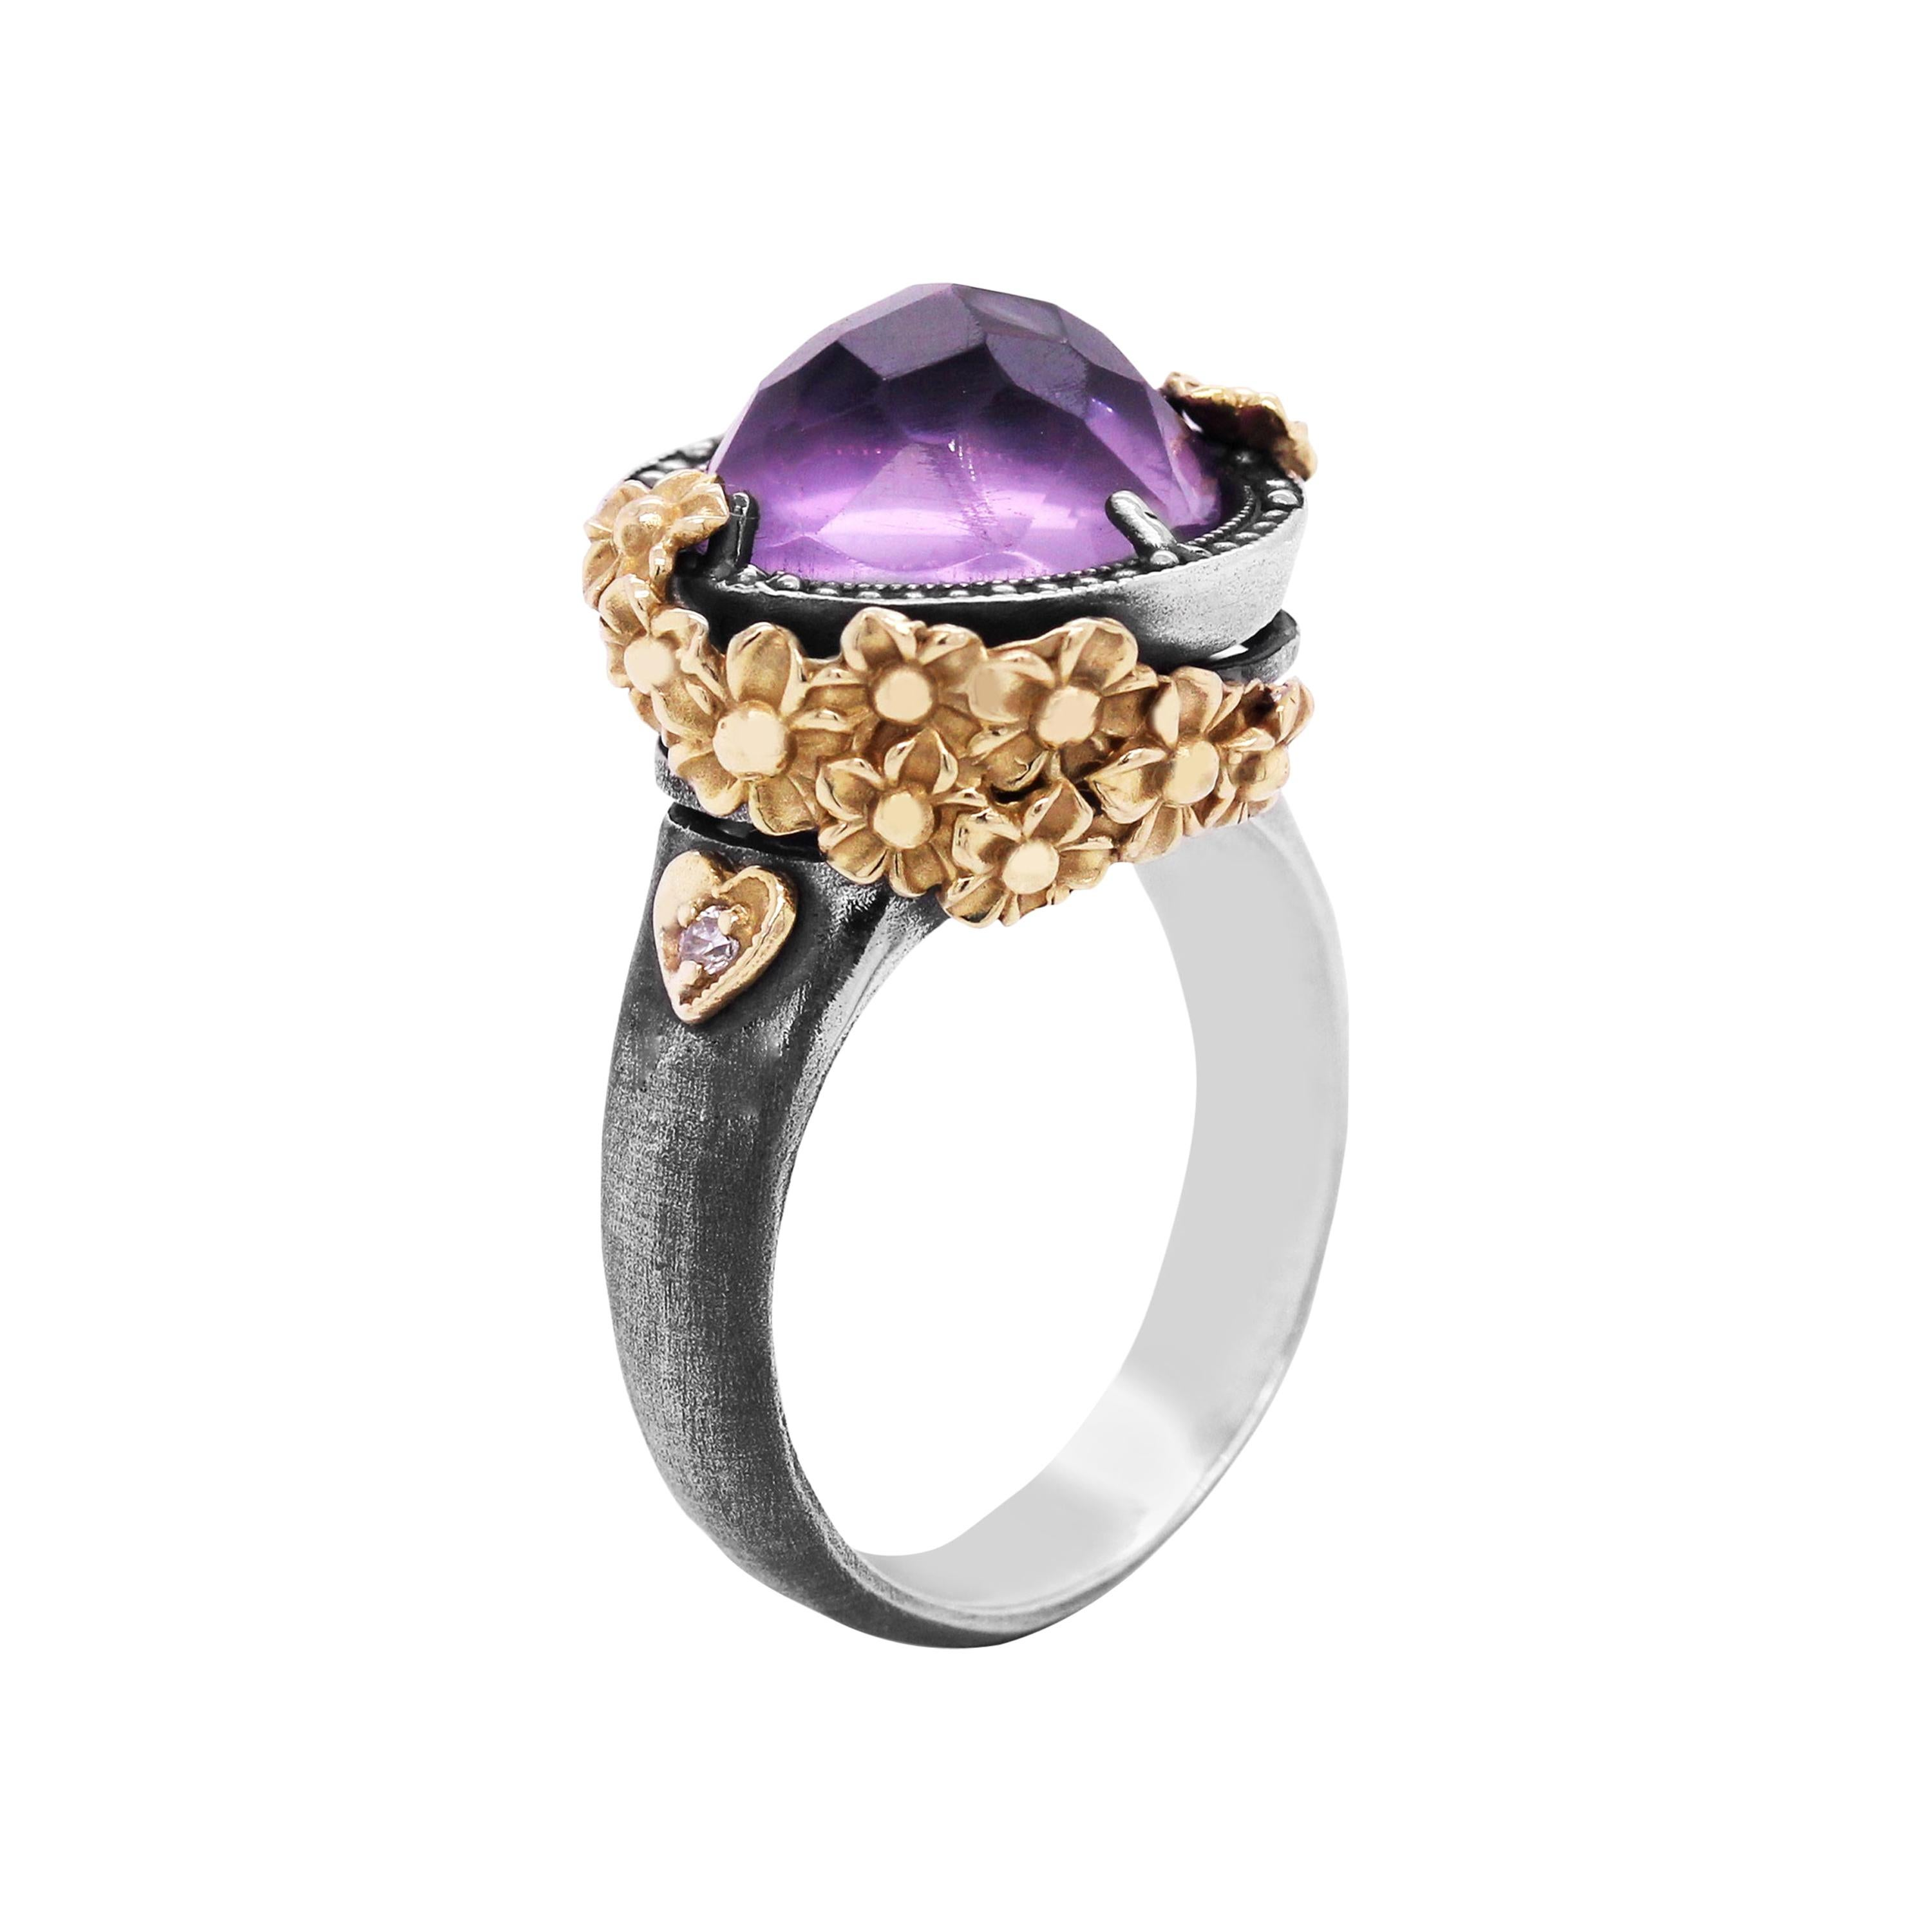 Sterling Silver and Gold Rose Ring with Amethyst Center